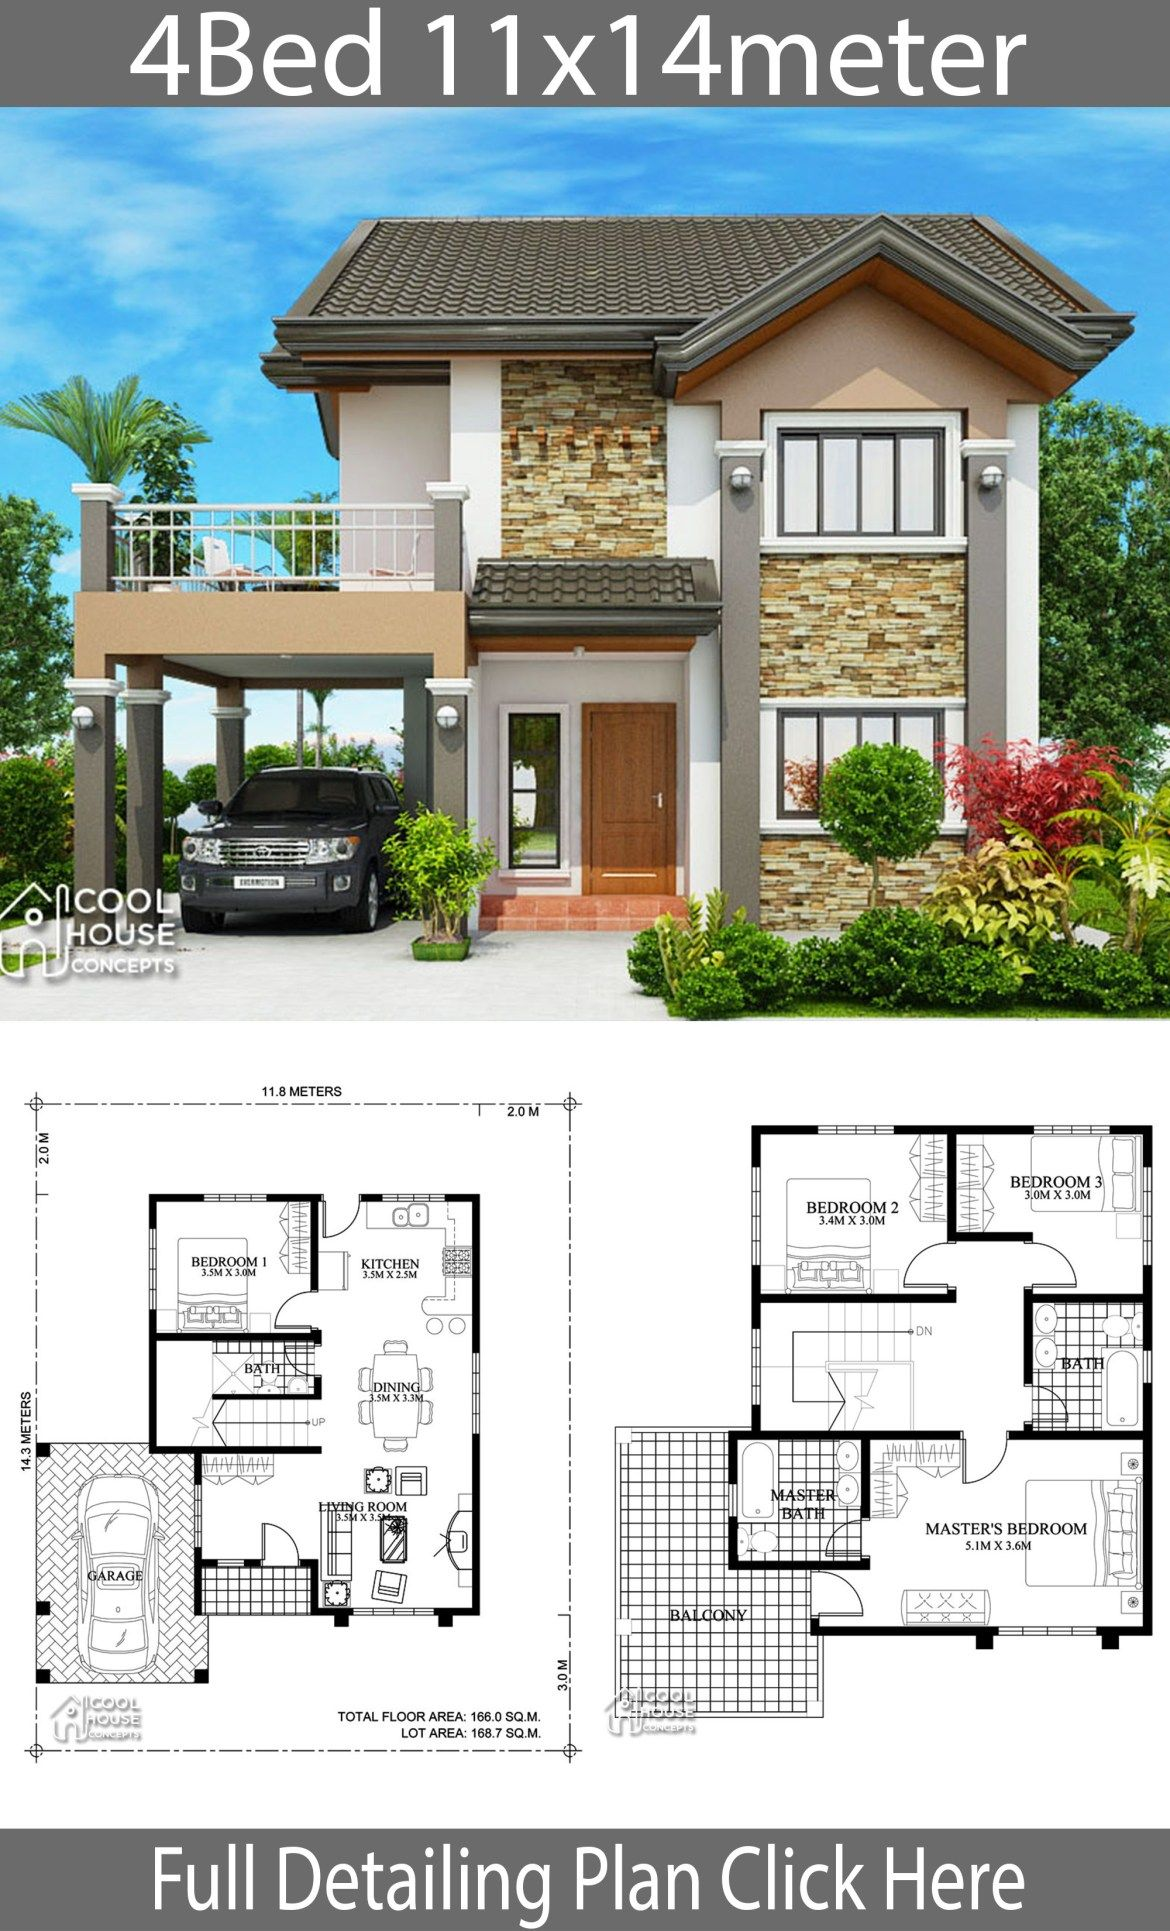 Home Design Plan 11x14m With 4 Bedrooms Two Story House Design